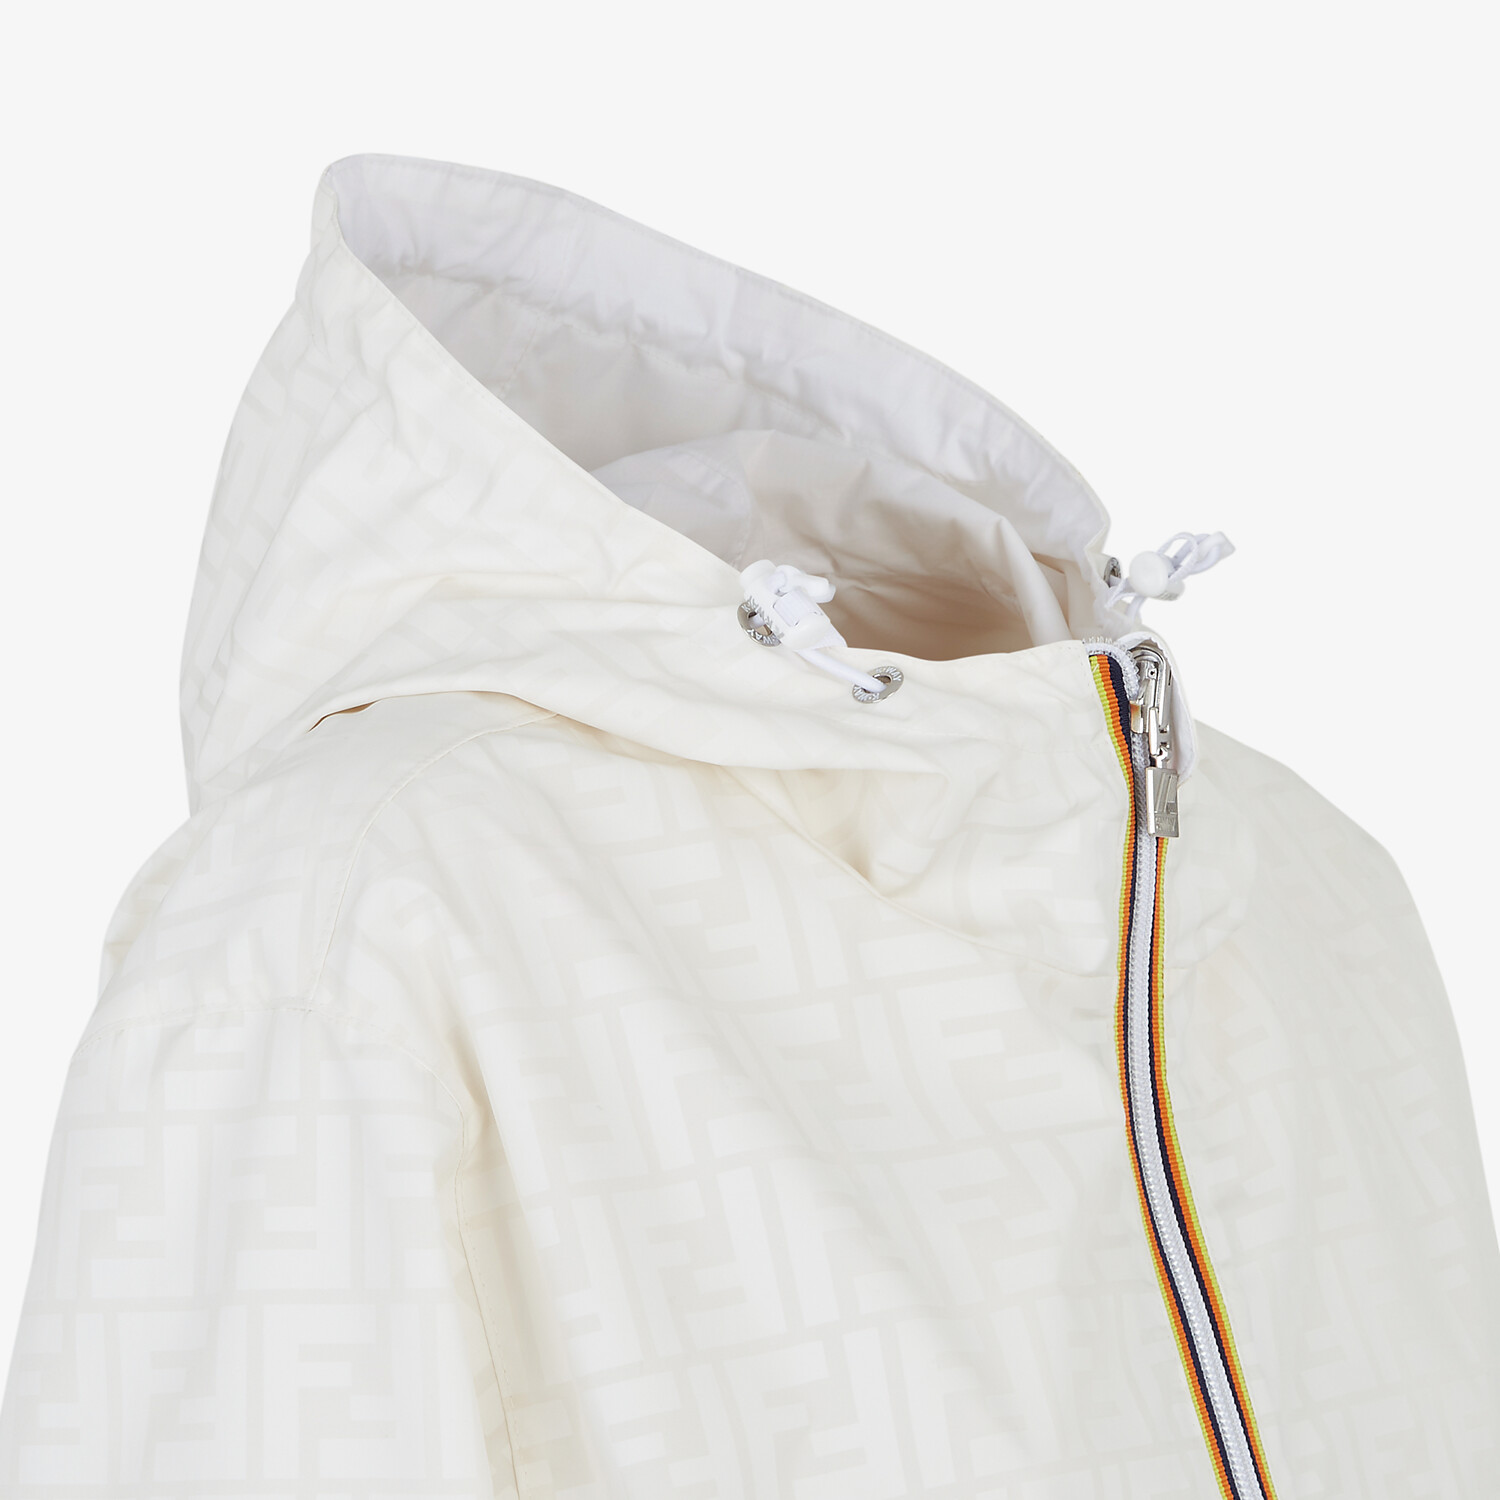 FENDI WINDBREAKER - White nylon FENDI x K-Way® jacket - view 3 detail